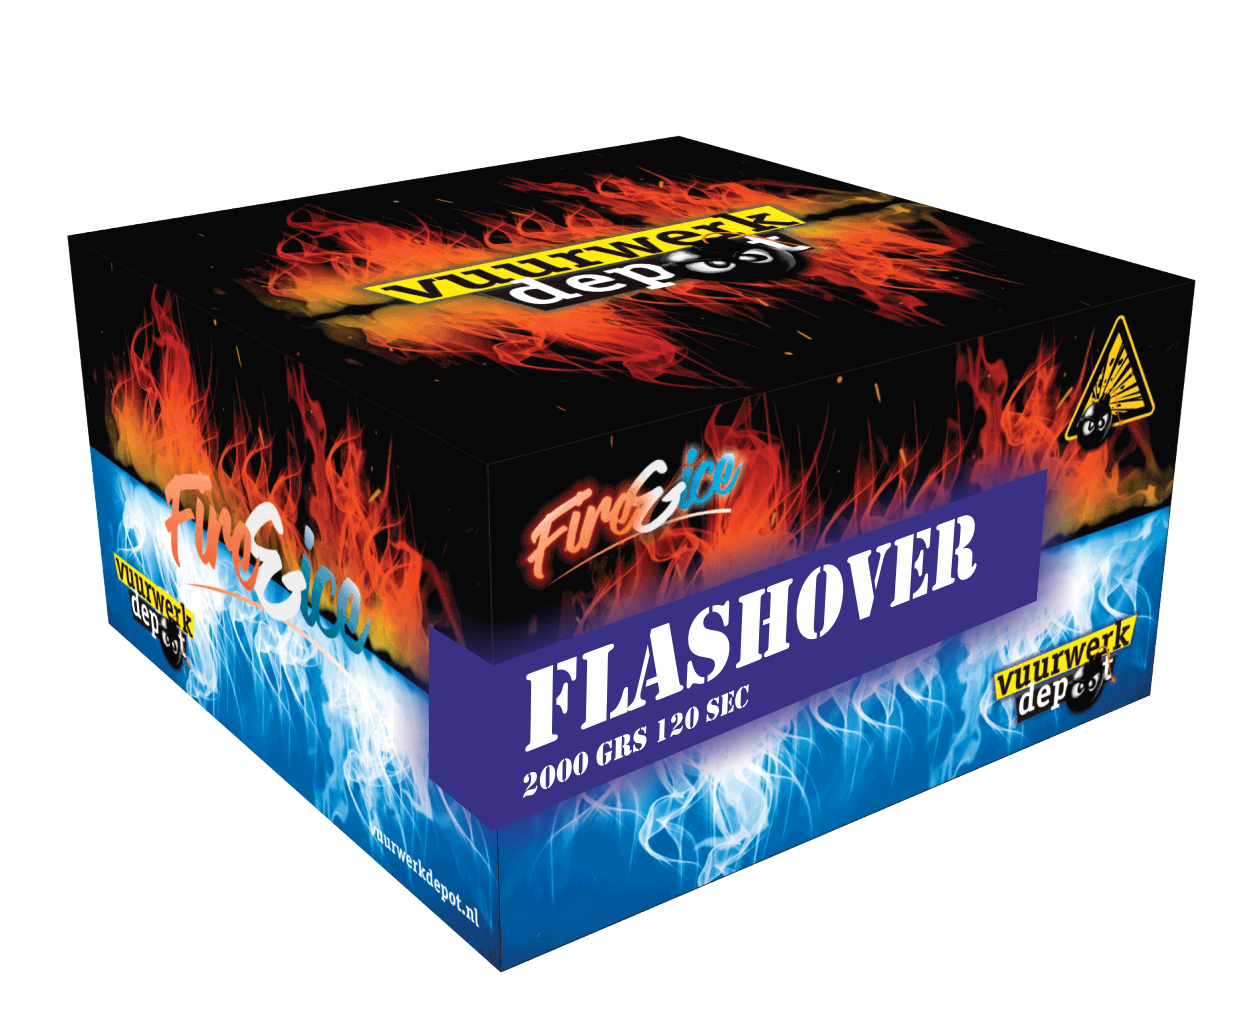 Flashover [Fire&Ice collection] (op=op)